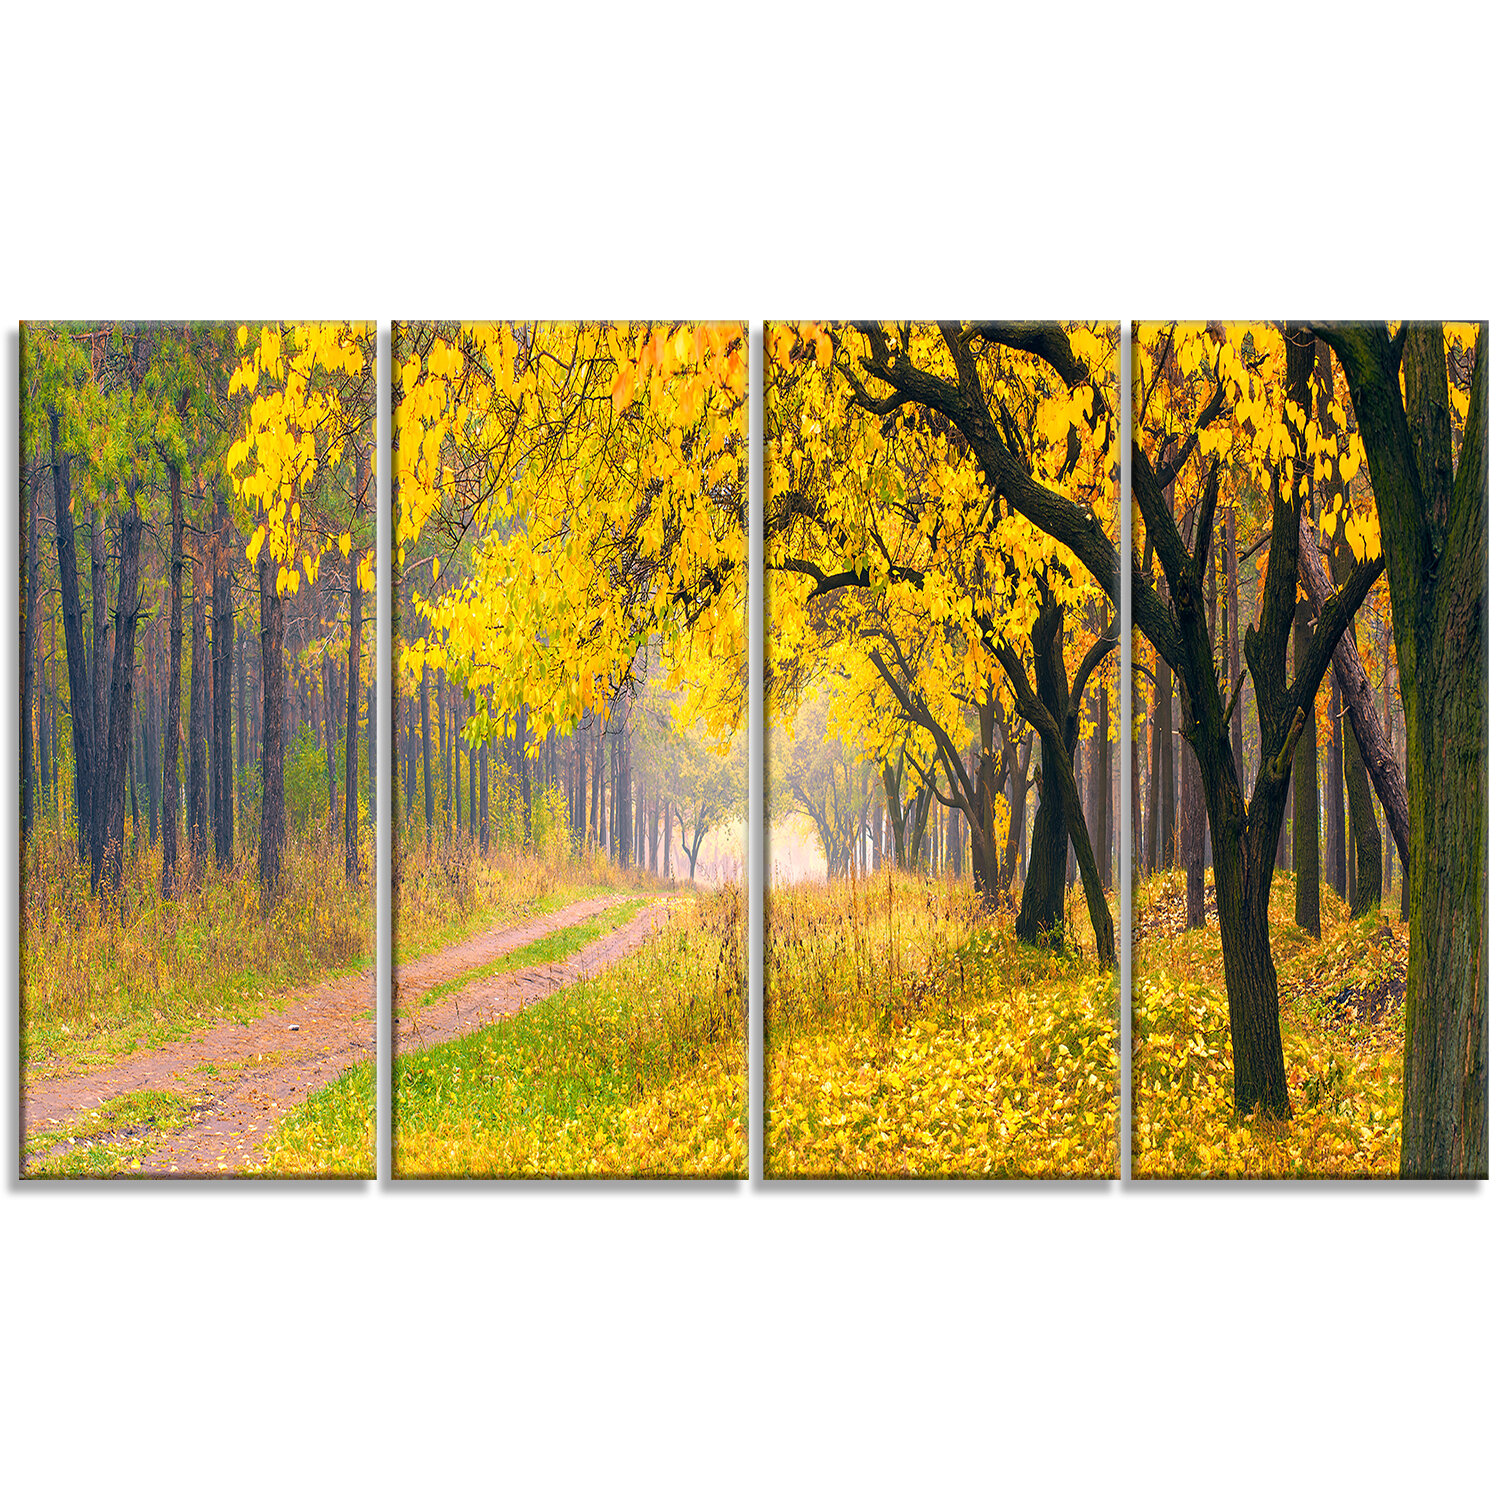 Attractive 4 Piece Wall Art Canvas Photos - The Wall Art Decorations ...